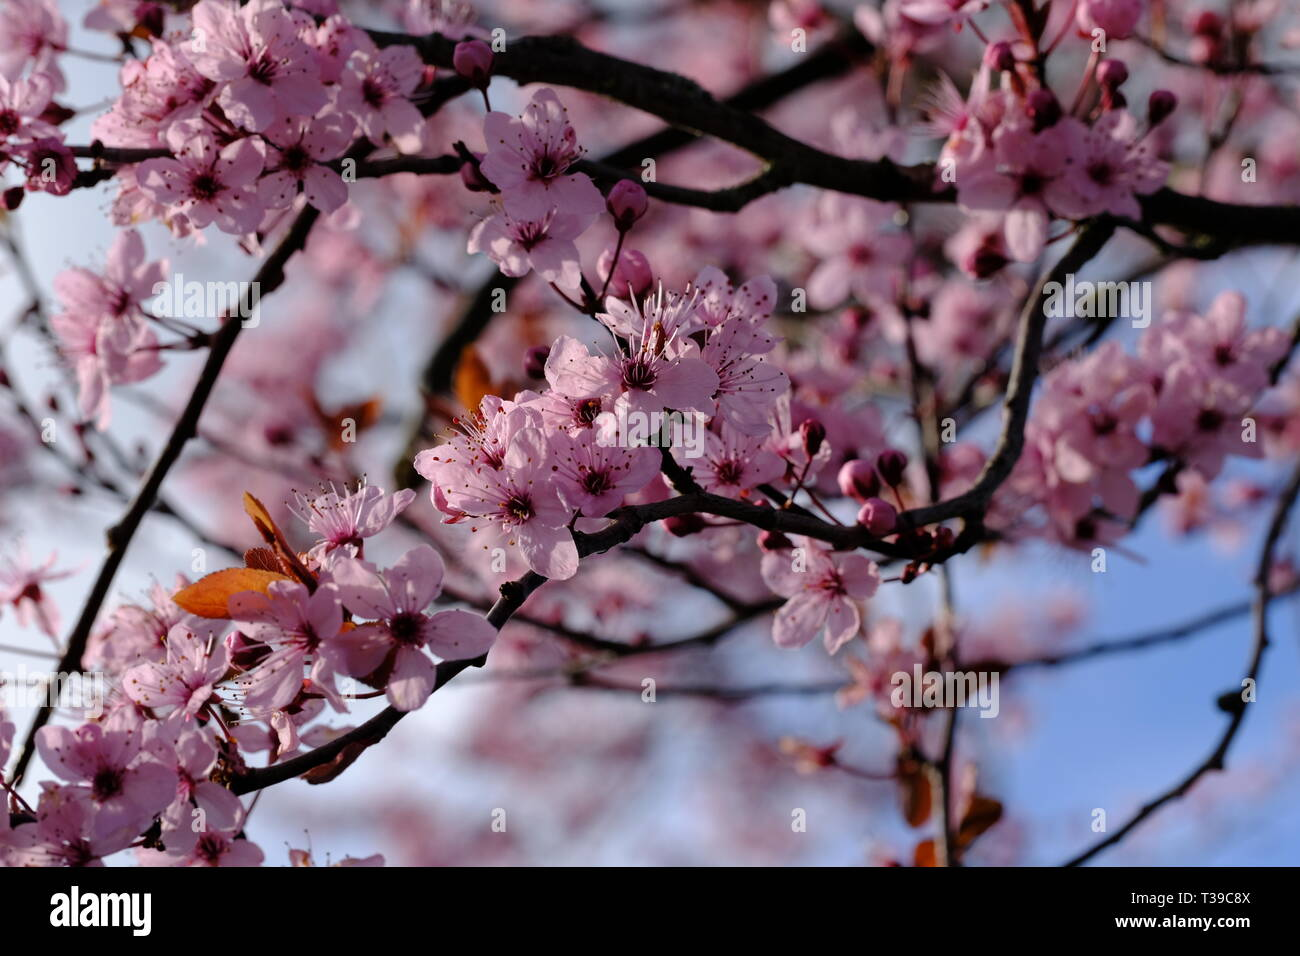 Decorative Or Ornamental Plum Tree In Flower Stock Photo